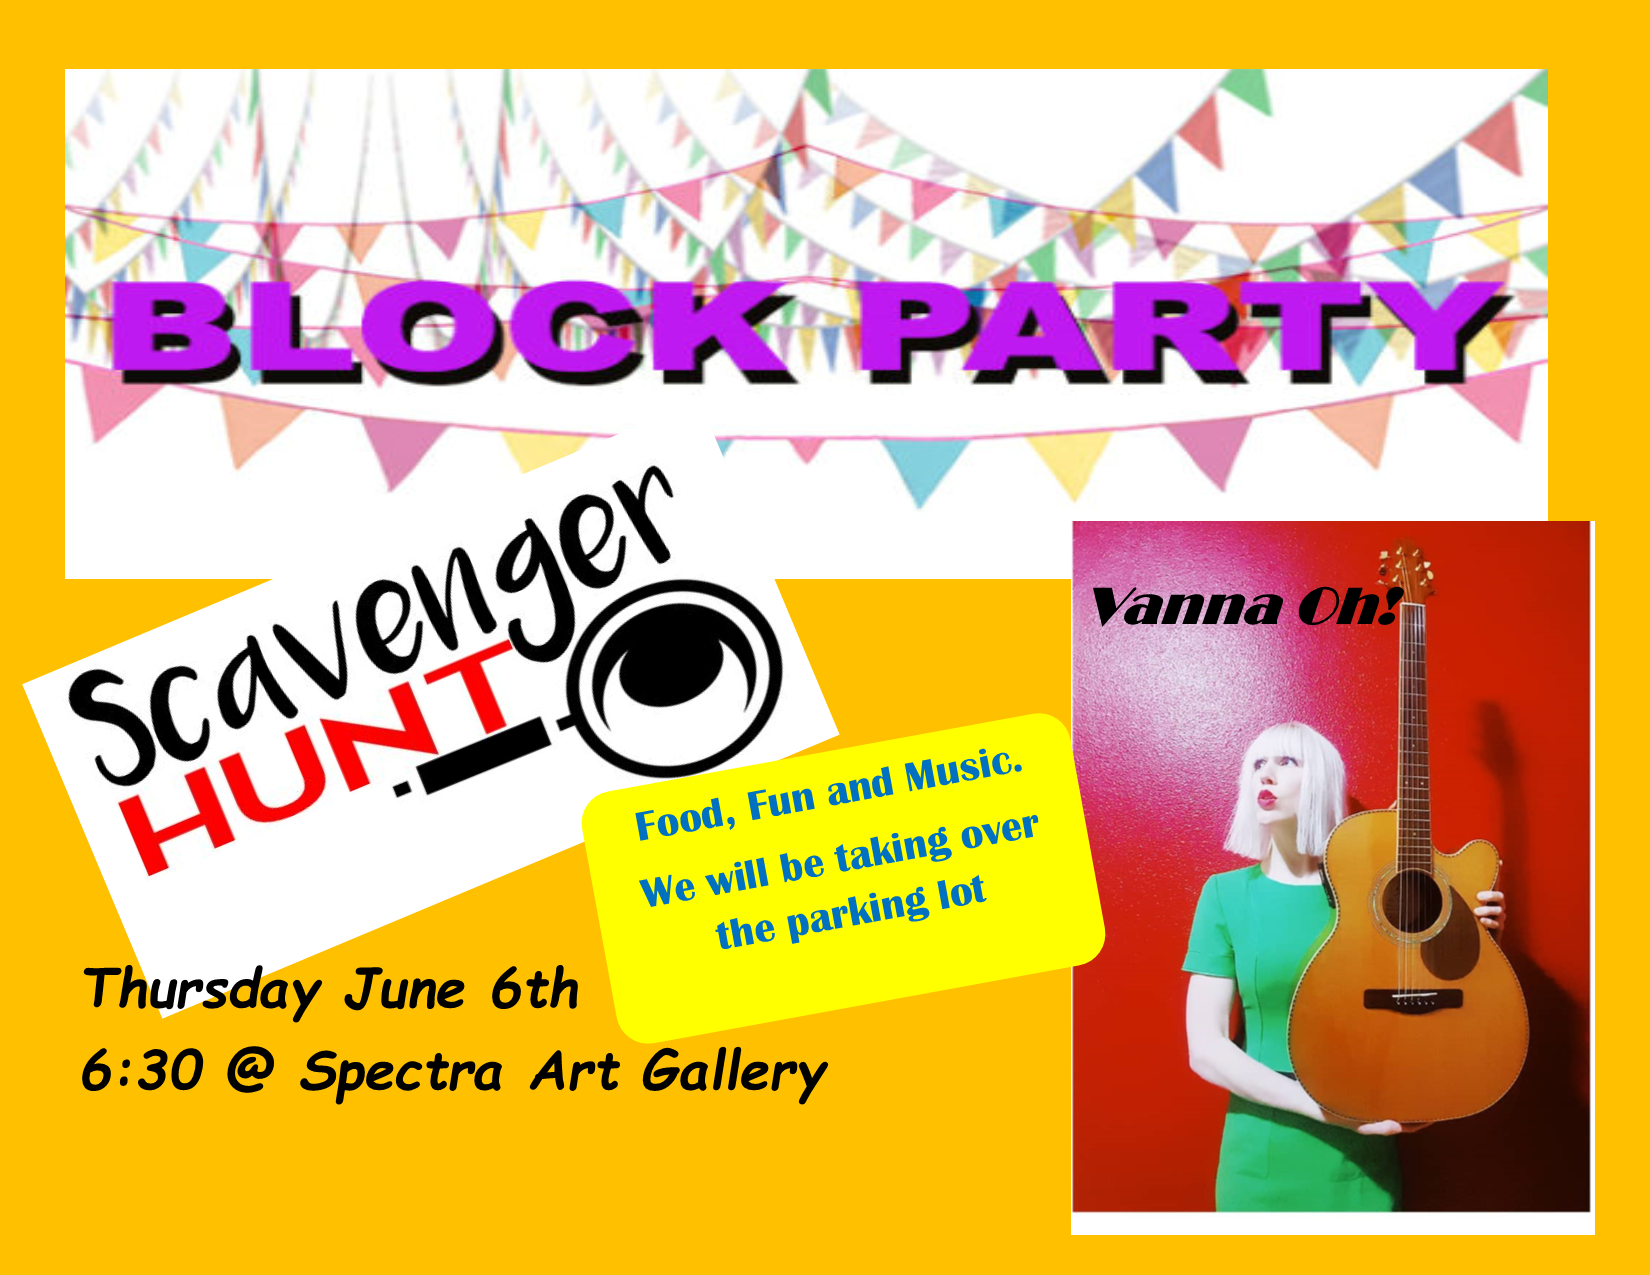 Block Party and Scavenger Hunt. - Thursday June 6th @ 6:30, we will be taking over the parking lot at Spectra Art Gallery.Live music by Vanna Oh!, food, and a scavenger hunt.We have opened up this event to everyone.